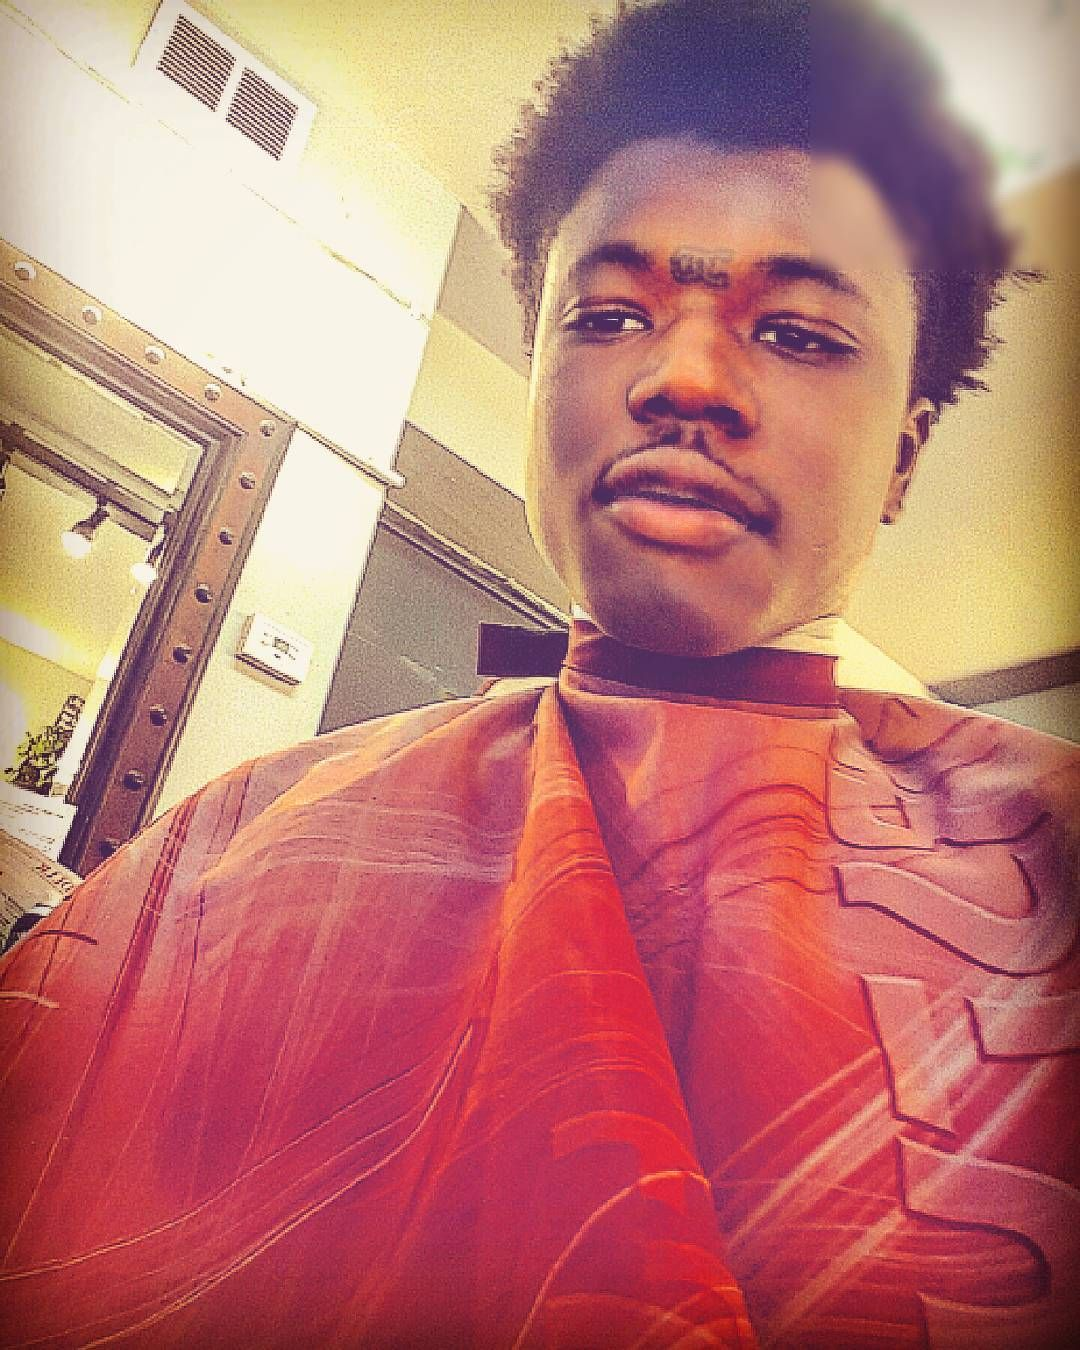 Dc Young Fly Haircut : young, haircut, Instagram, Photo, BmoreVeryOwn, 10:14pm, Instagram,, Photo,